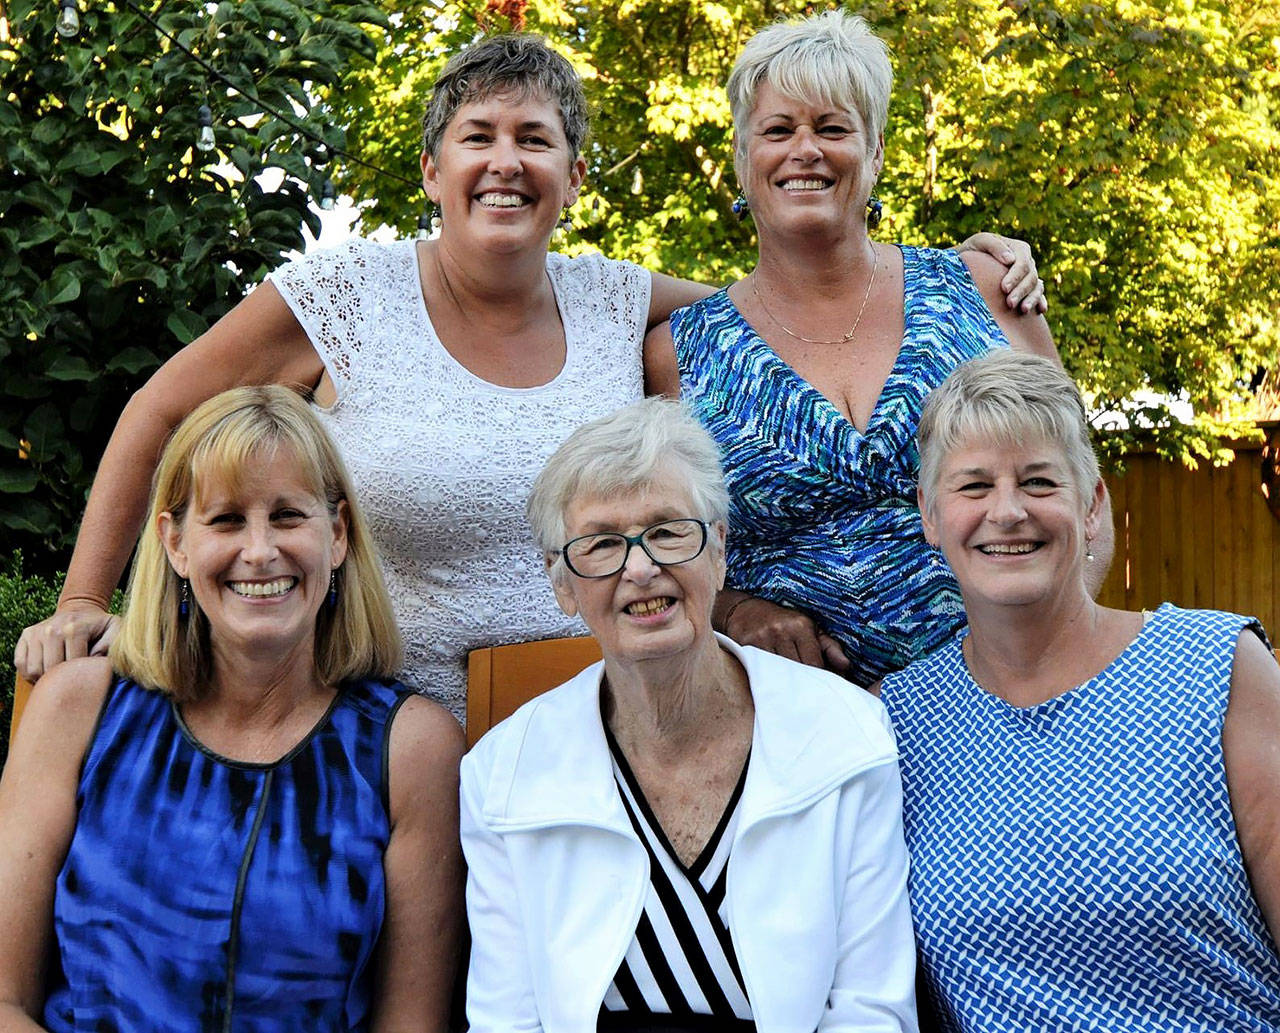 Jeanne Metzger (center, bottom row) on her 85th birthday with daughters Maddy Metzger-Utt (top left), Jo Metzger-Levin (top right), Meg Metzger (bottom left) and Jan Brossman (bottom right). A longtime Herald editor, Jeanne Metzger died Wednesday at age 89. (Contributed photo)